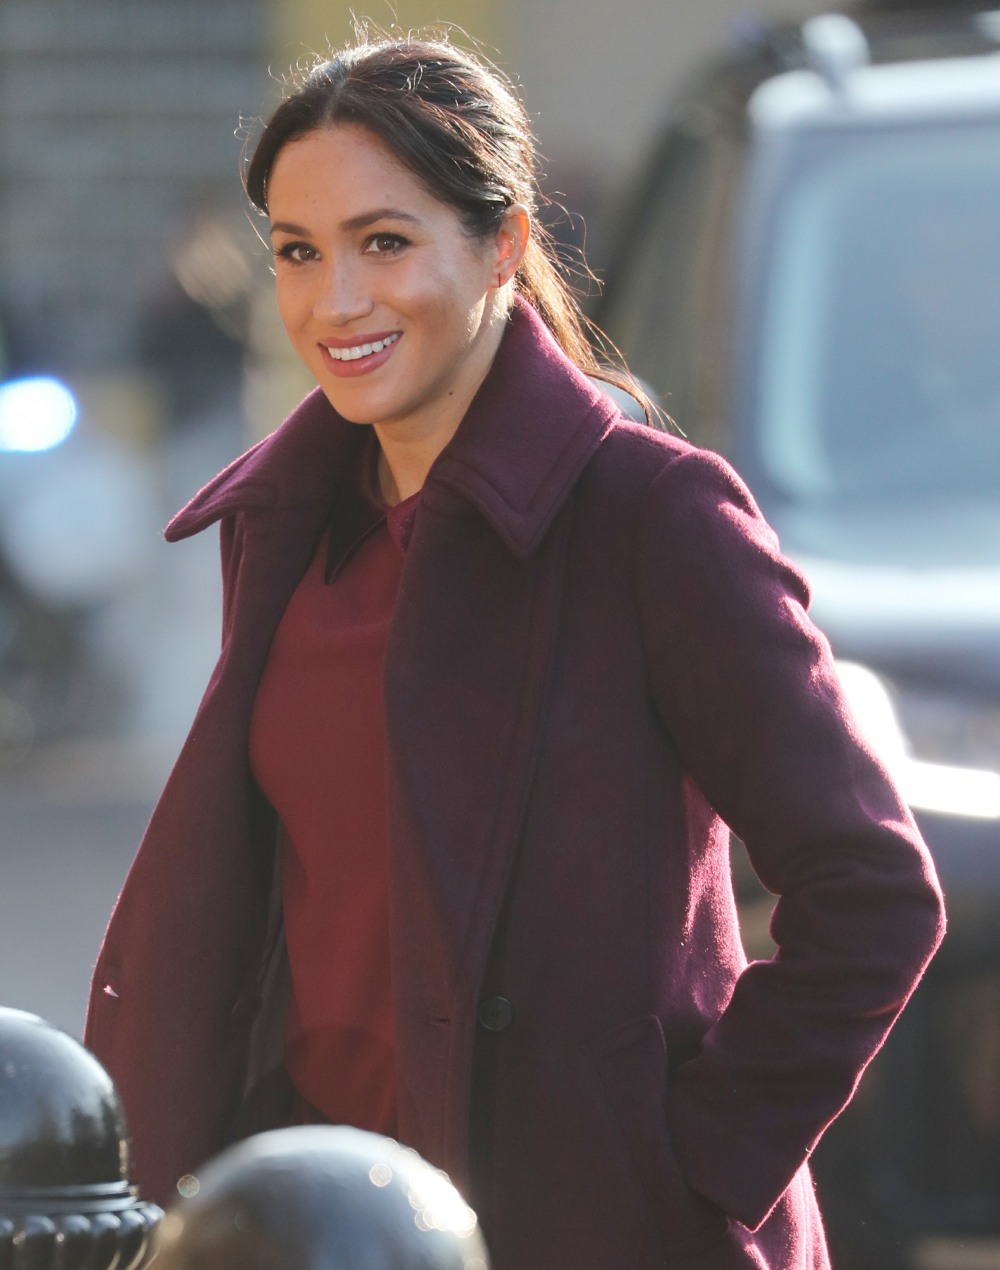 Meghan, Duchess of Sussex visits the Hubb Community Kitchen